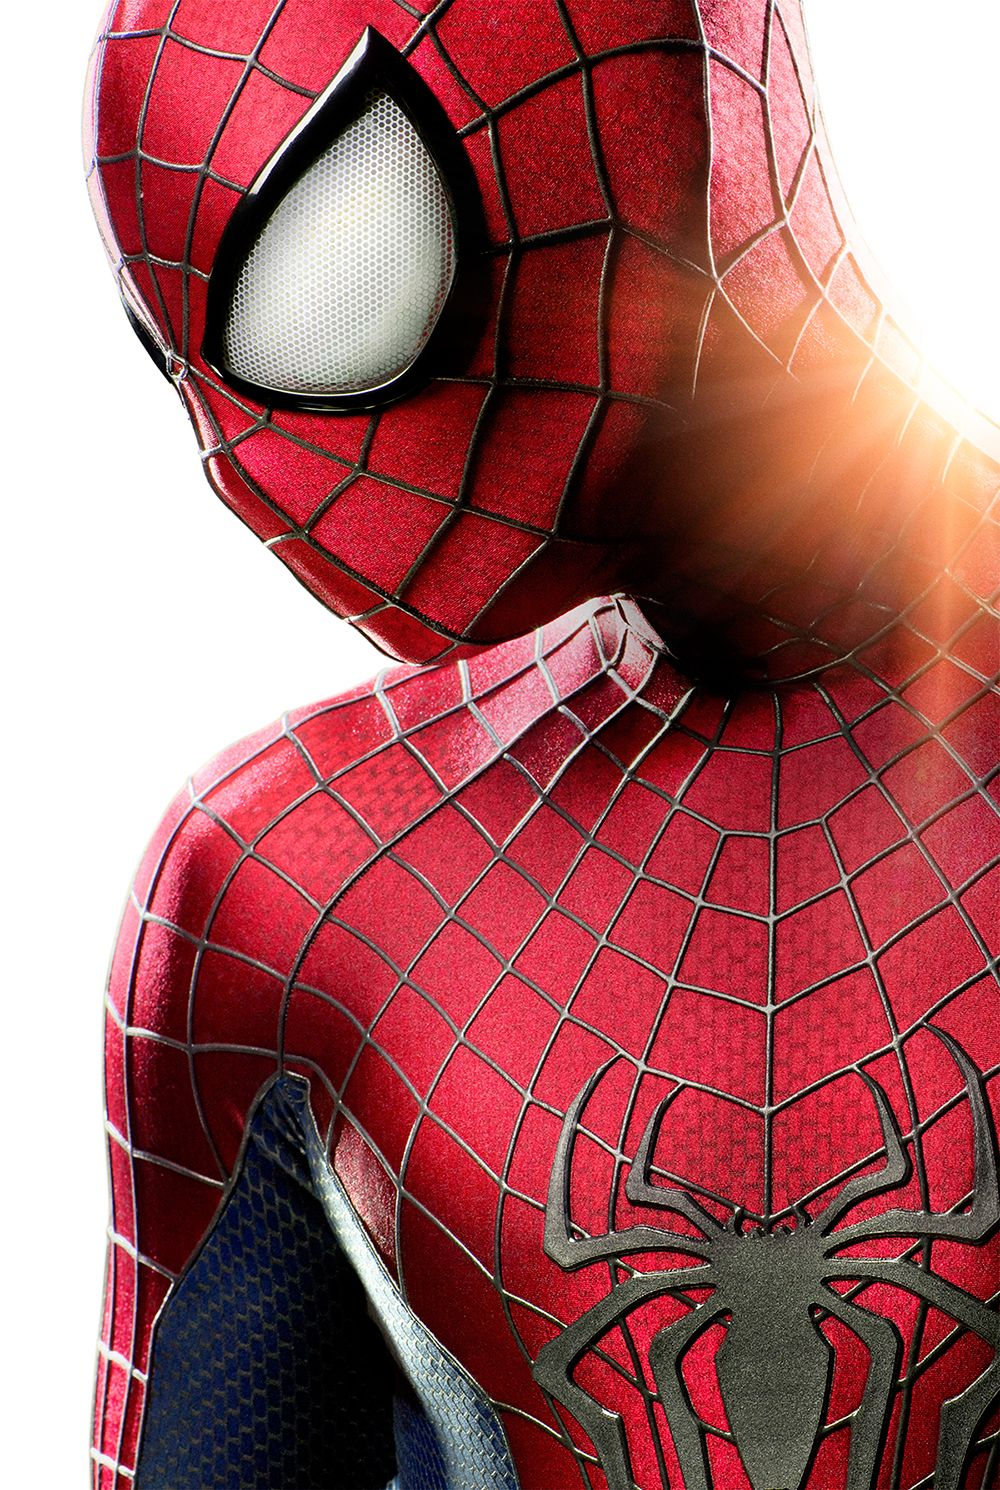 the amazing spider-man 3 and 4 set for release in 2016 and 2018